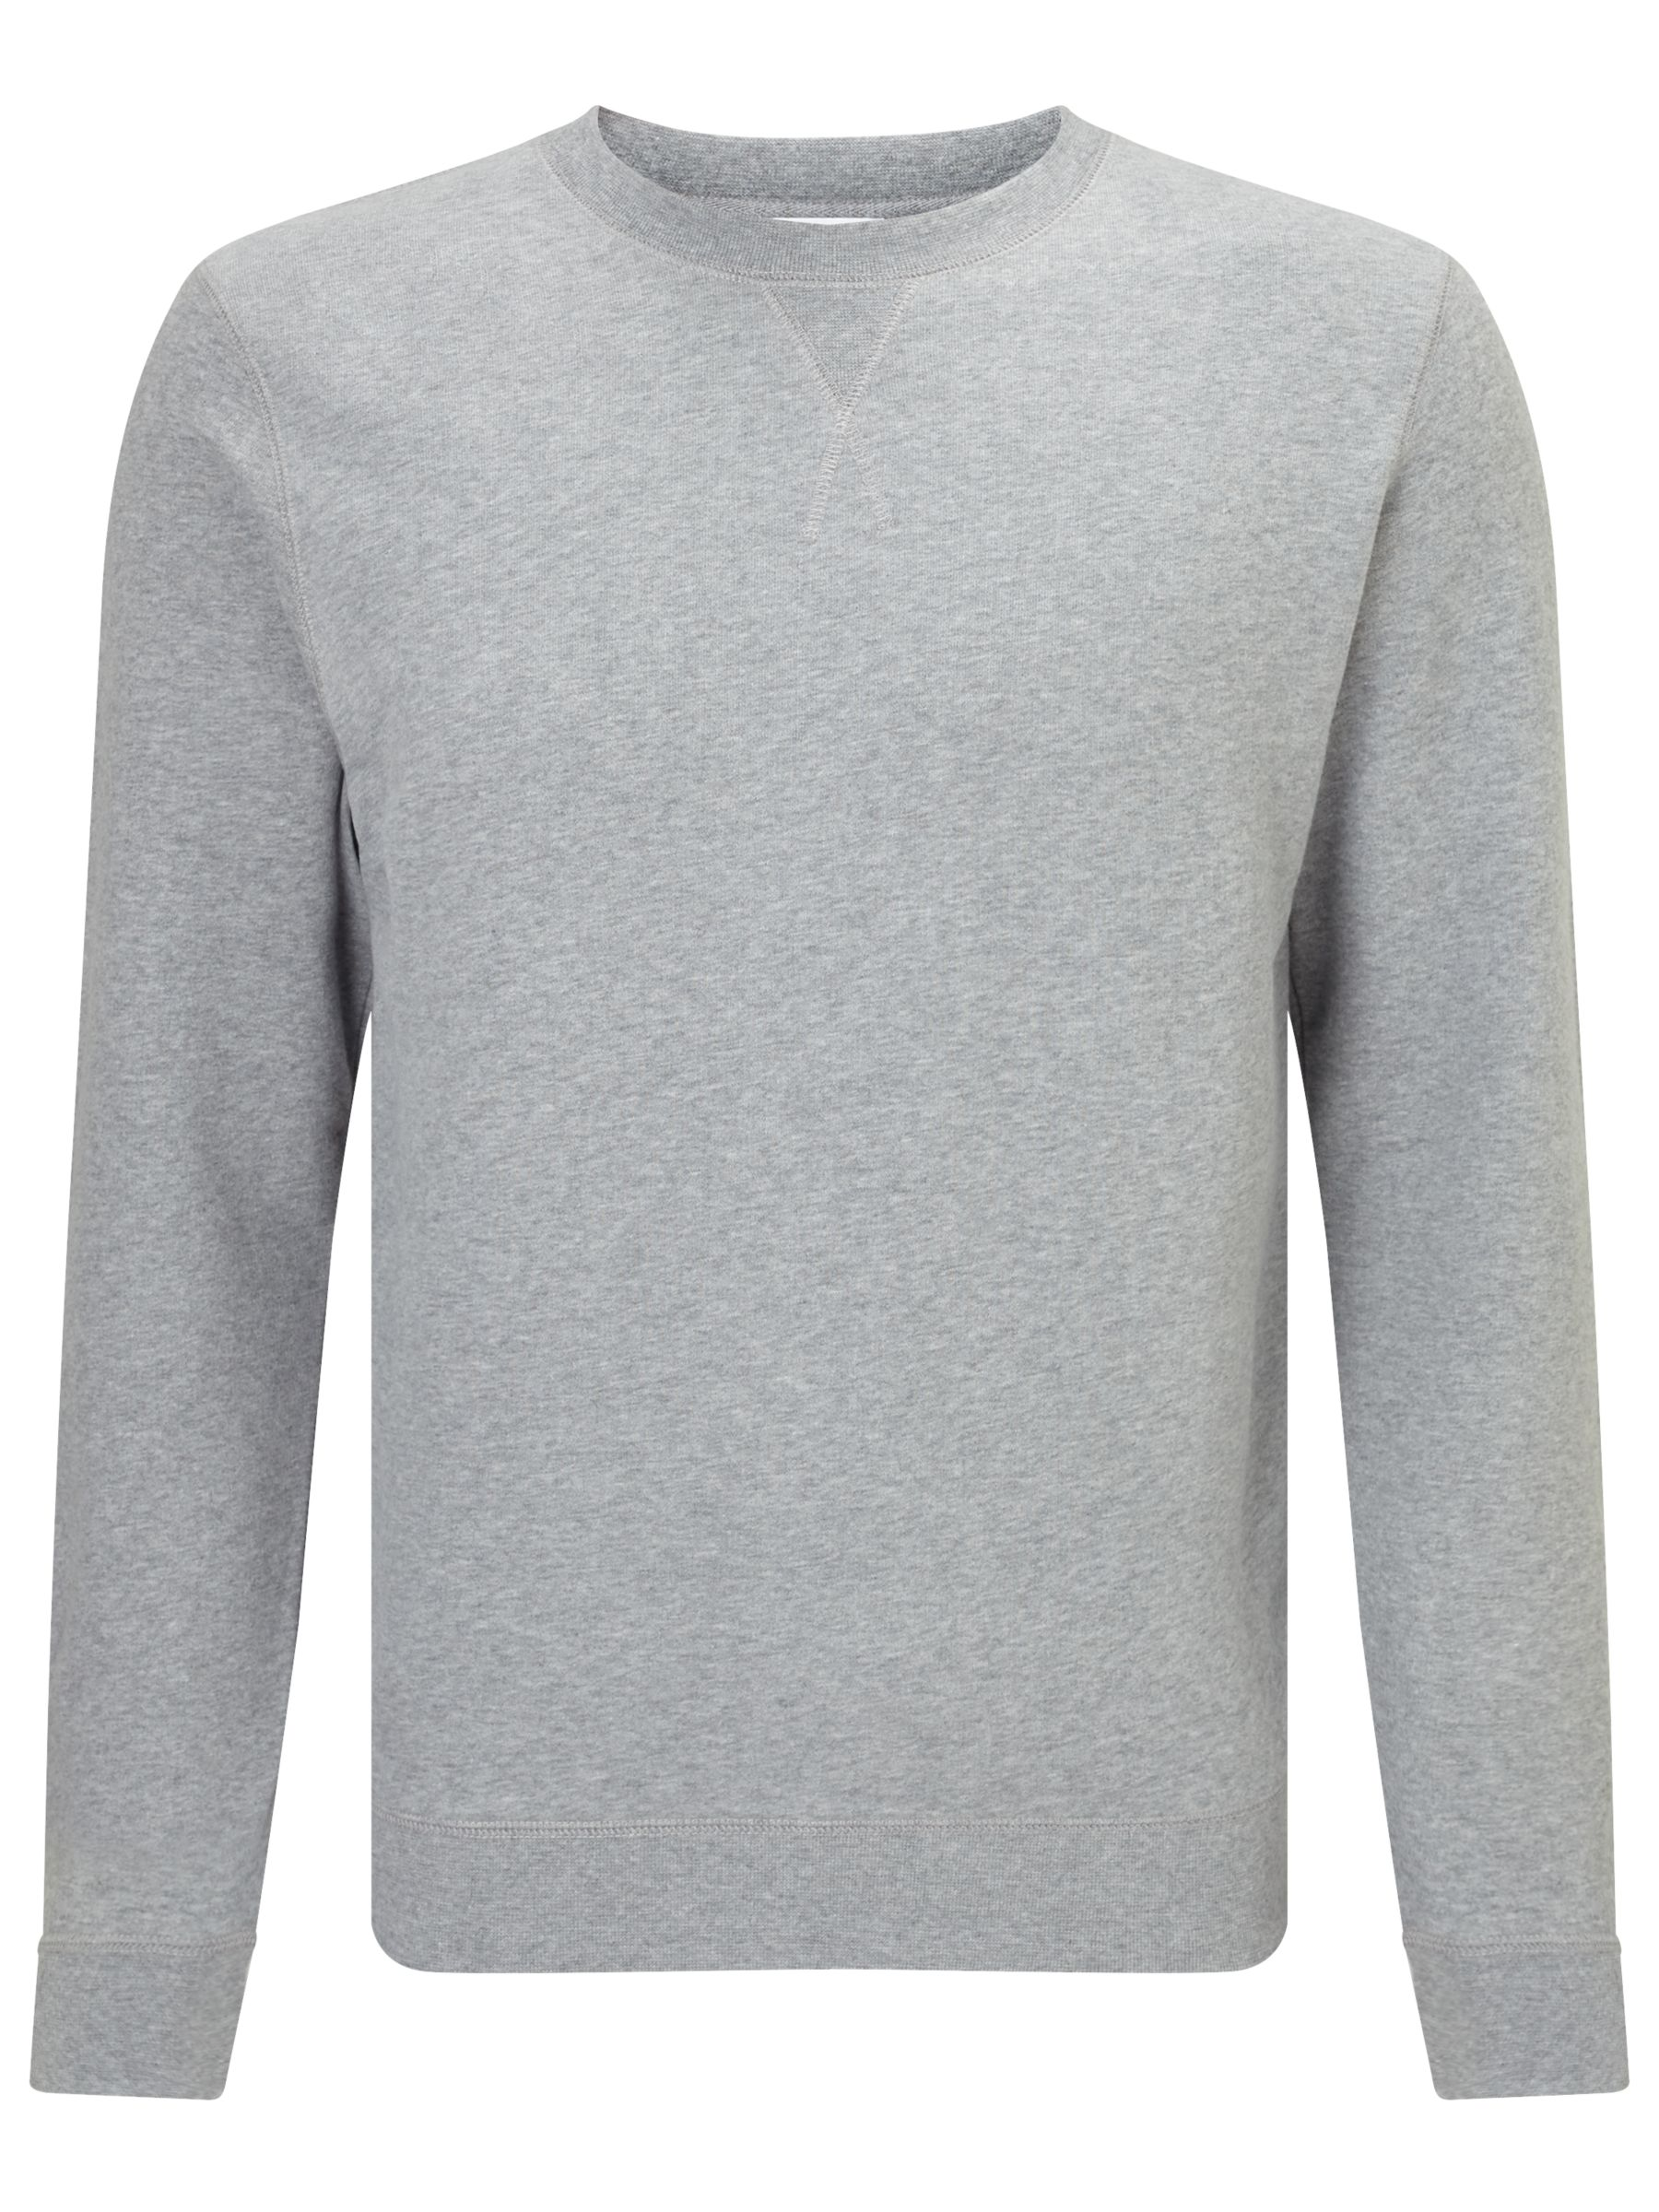 Sunspel Sunspel Loopback Cotton Sweatshirt, Grey Melange